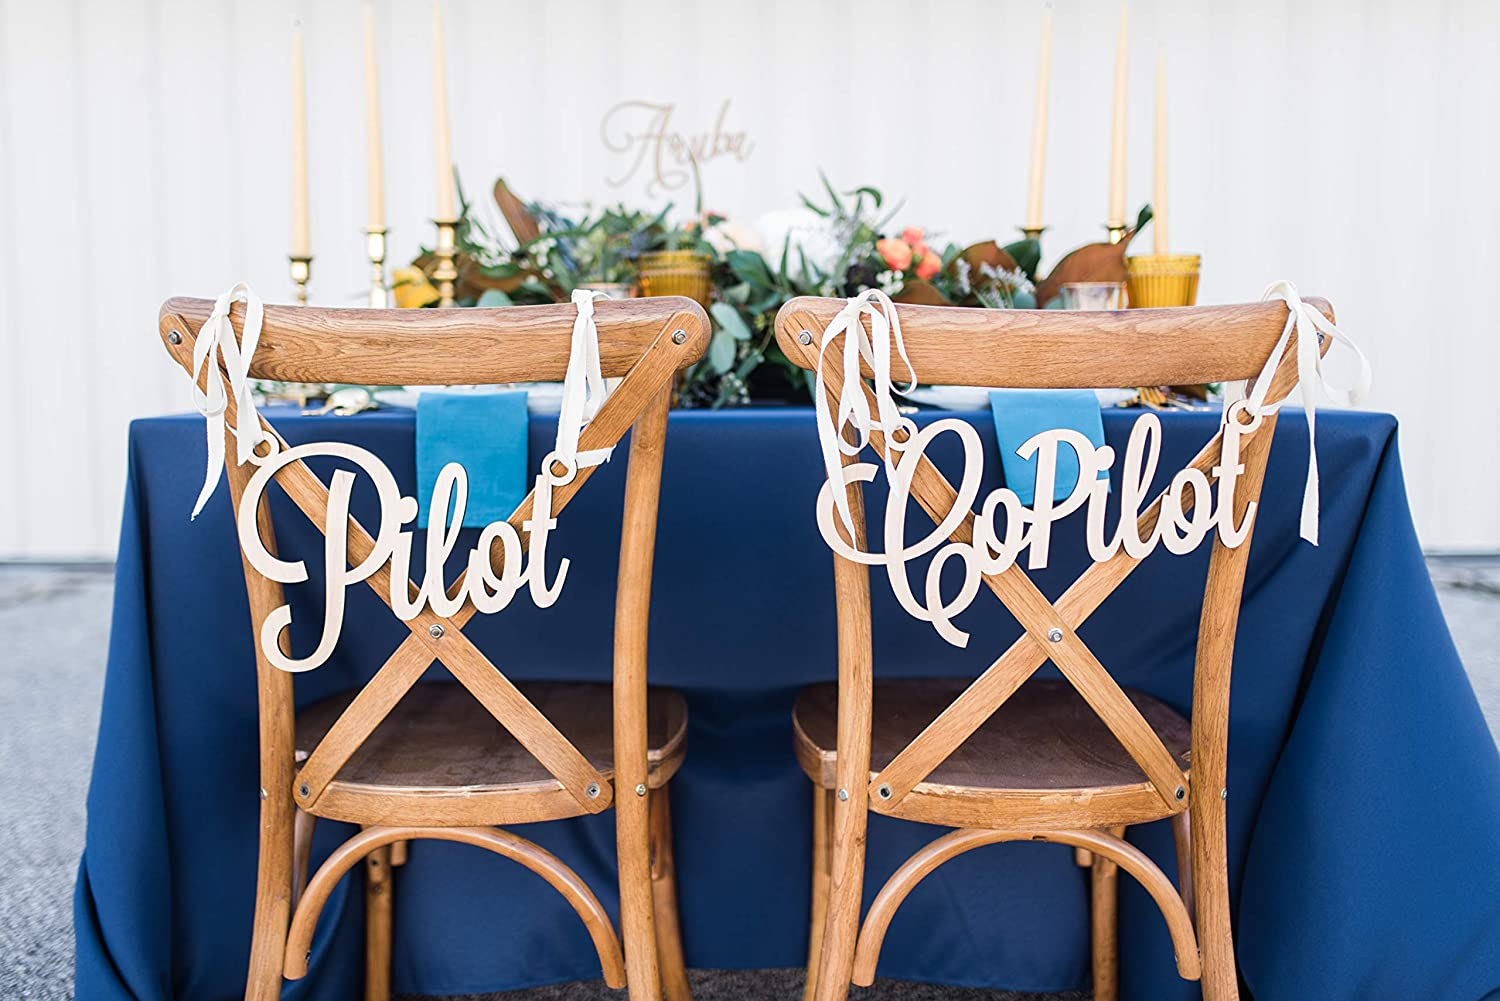 Pilot Copilot Chair Signs for Airplane Travel Some reservation Weddin Themed or Bargain